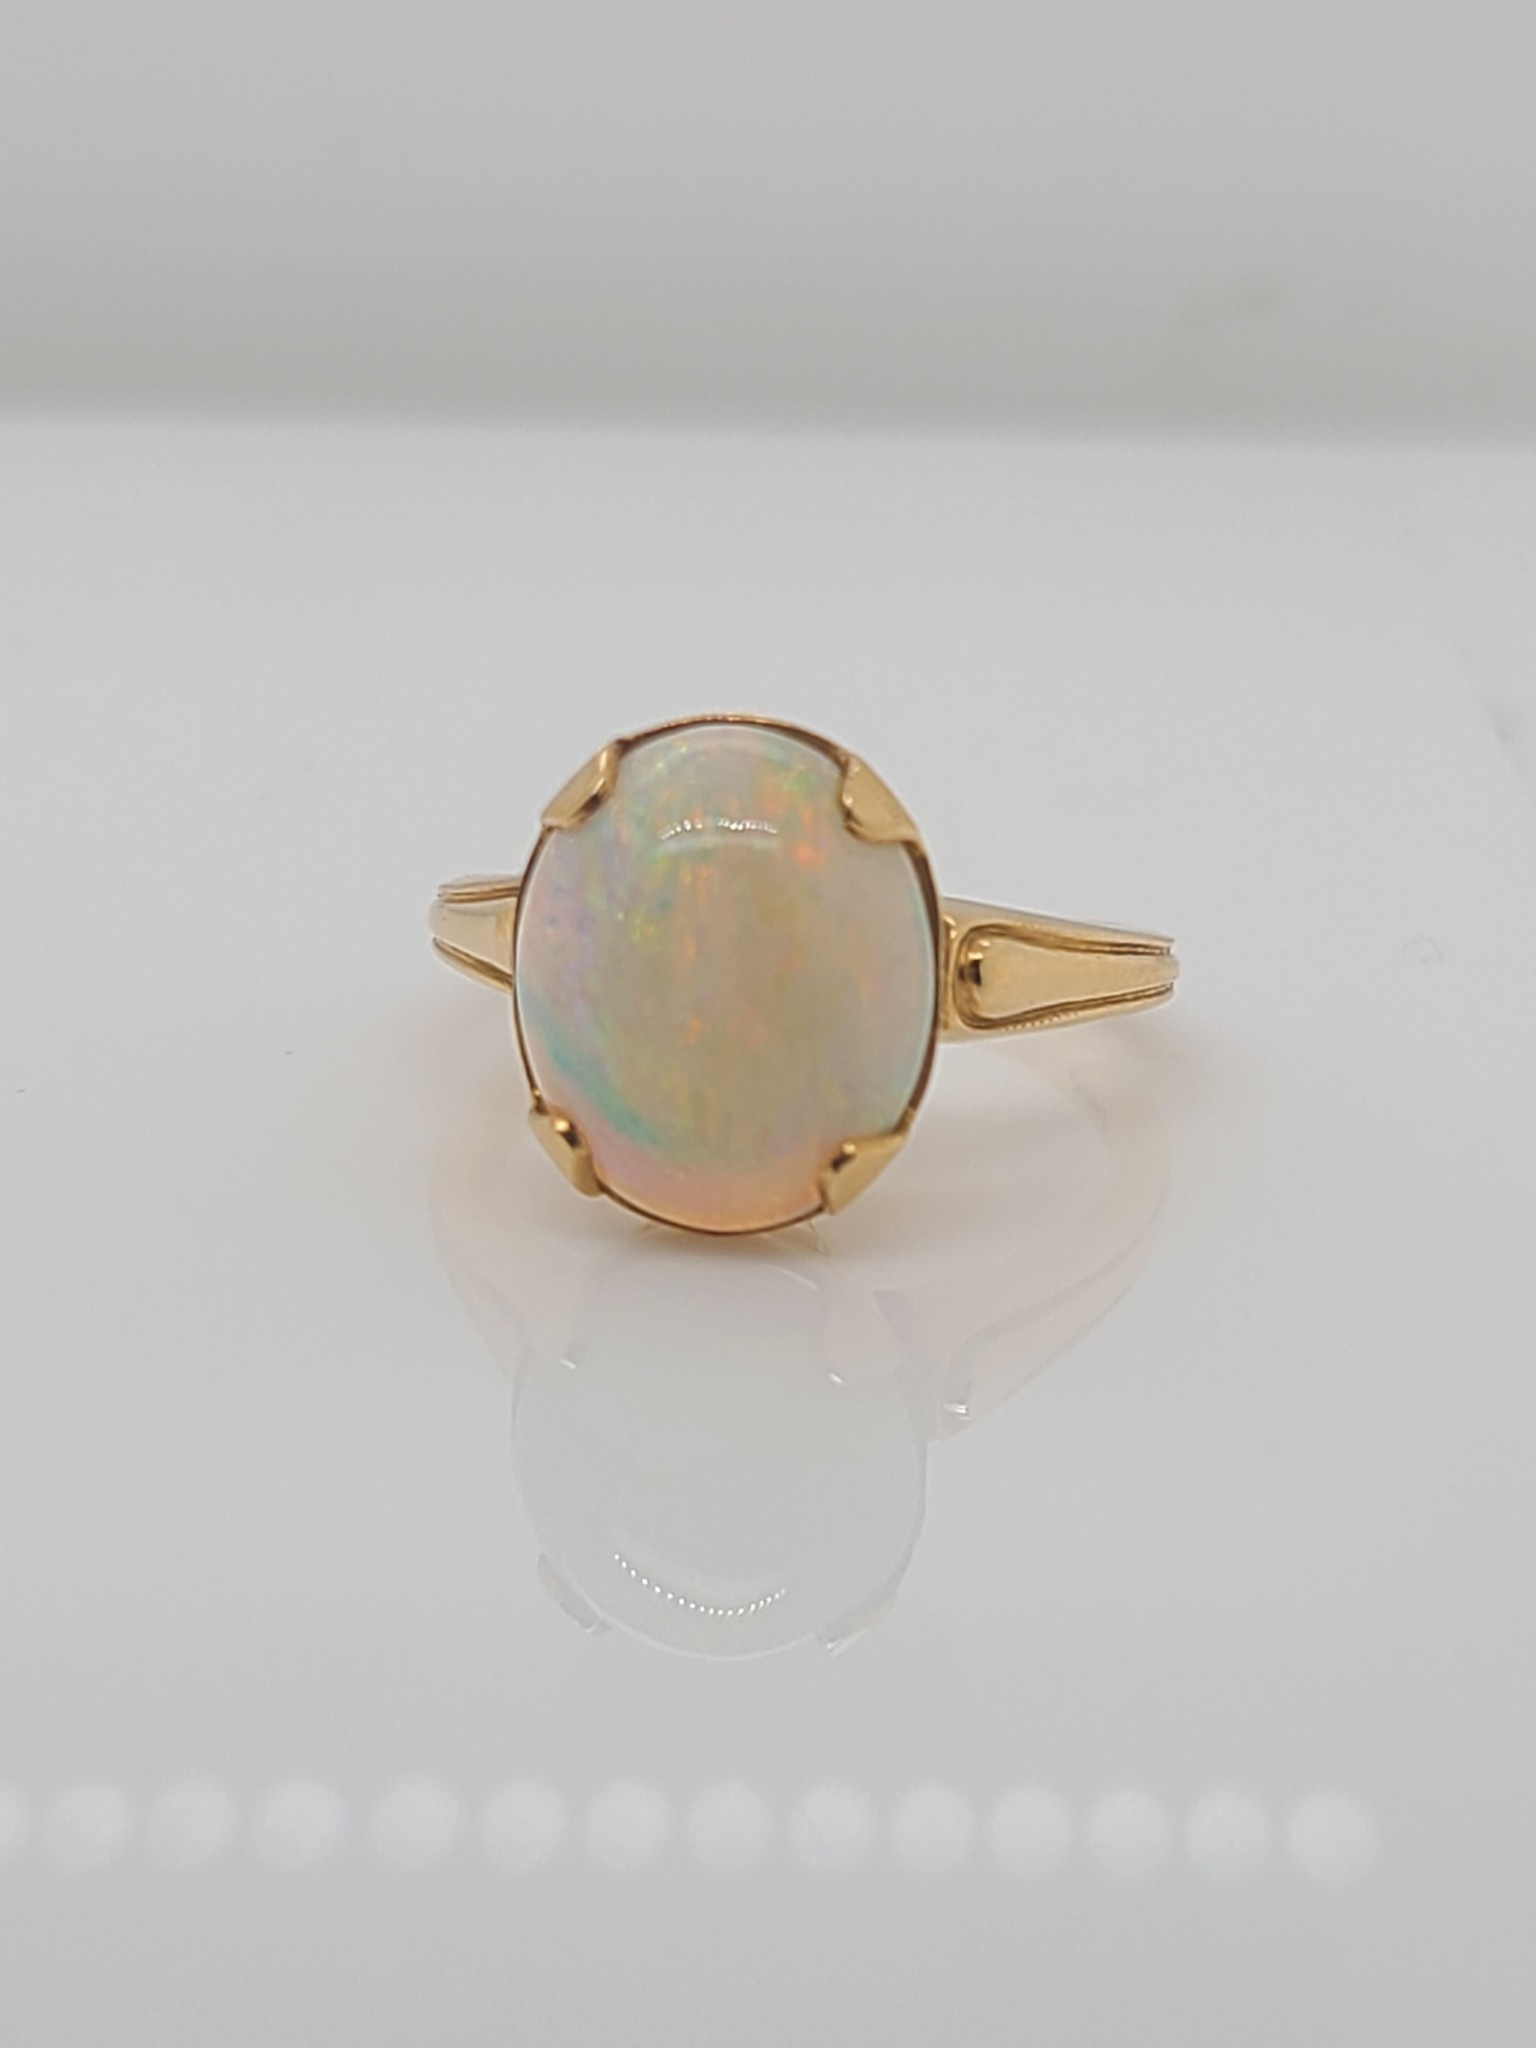 14kt Yellow Gold, White Opal 11.5x9.5 oval